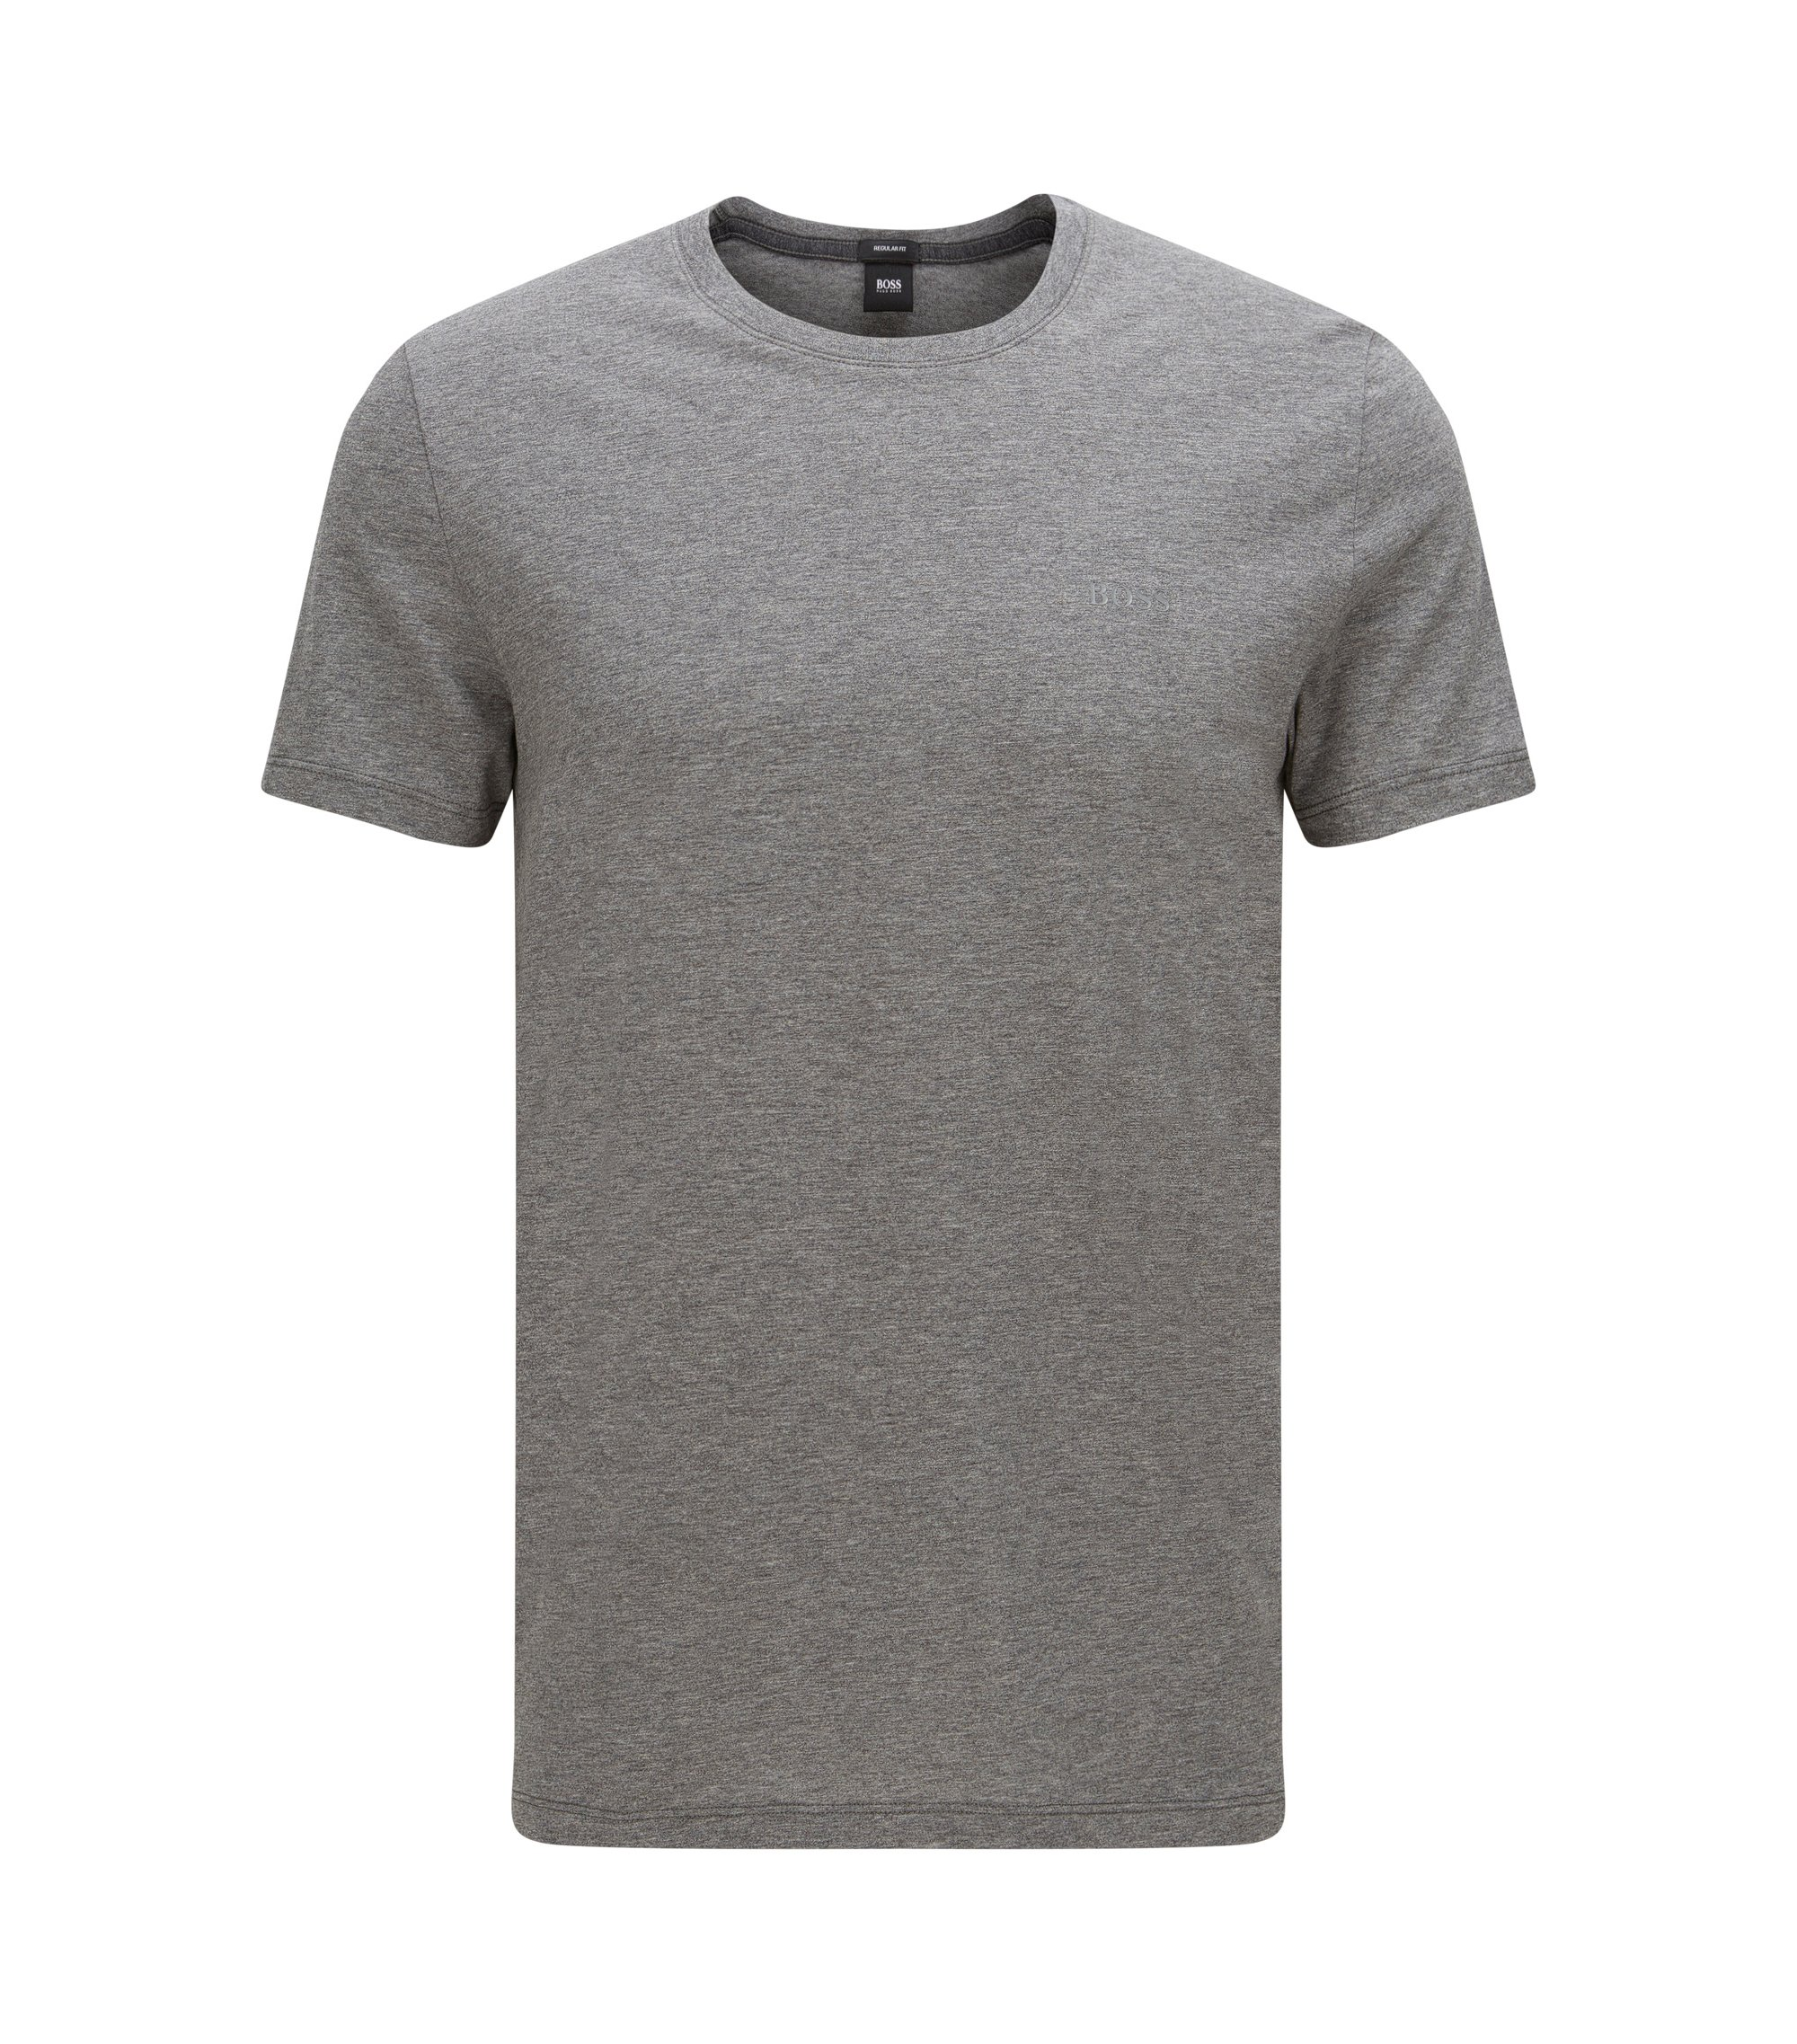 Camiseta regular fit en algodón suave, Gris